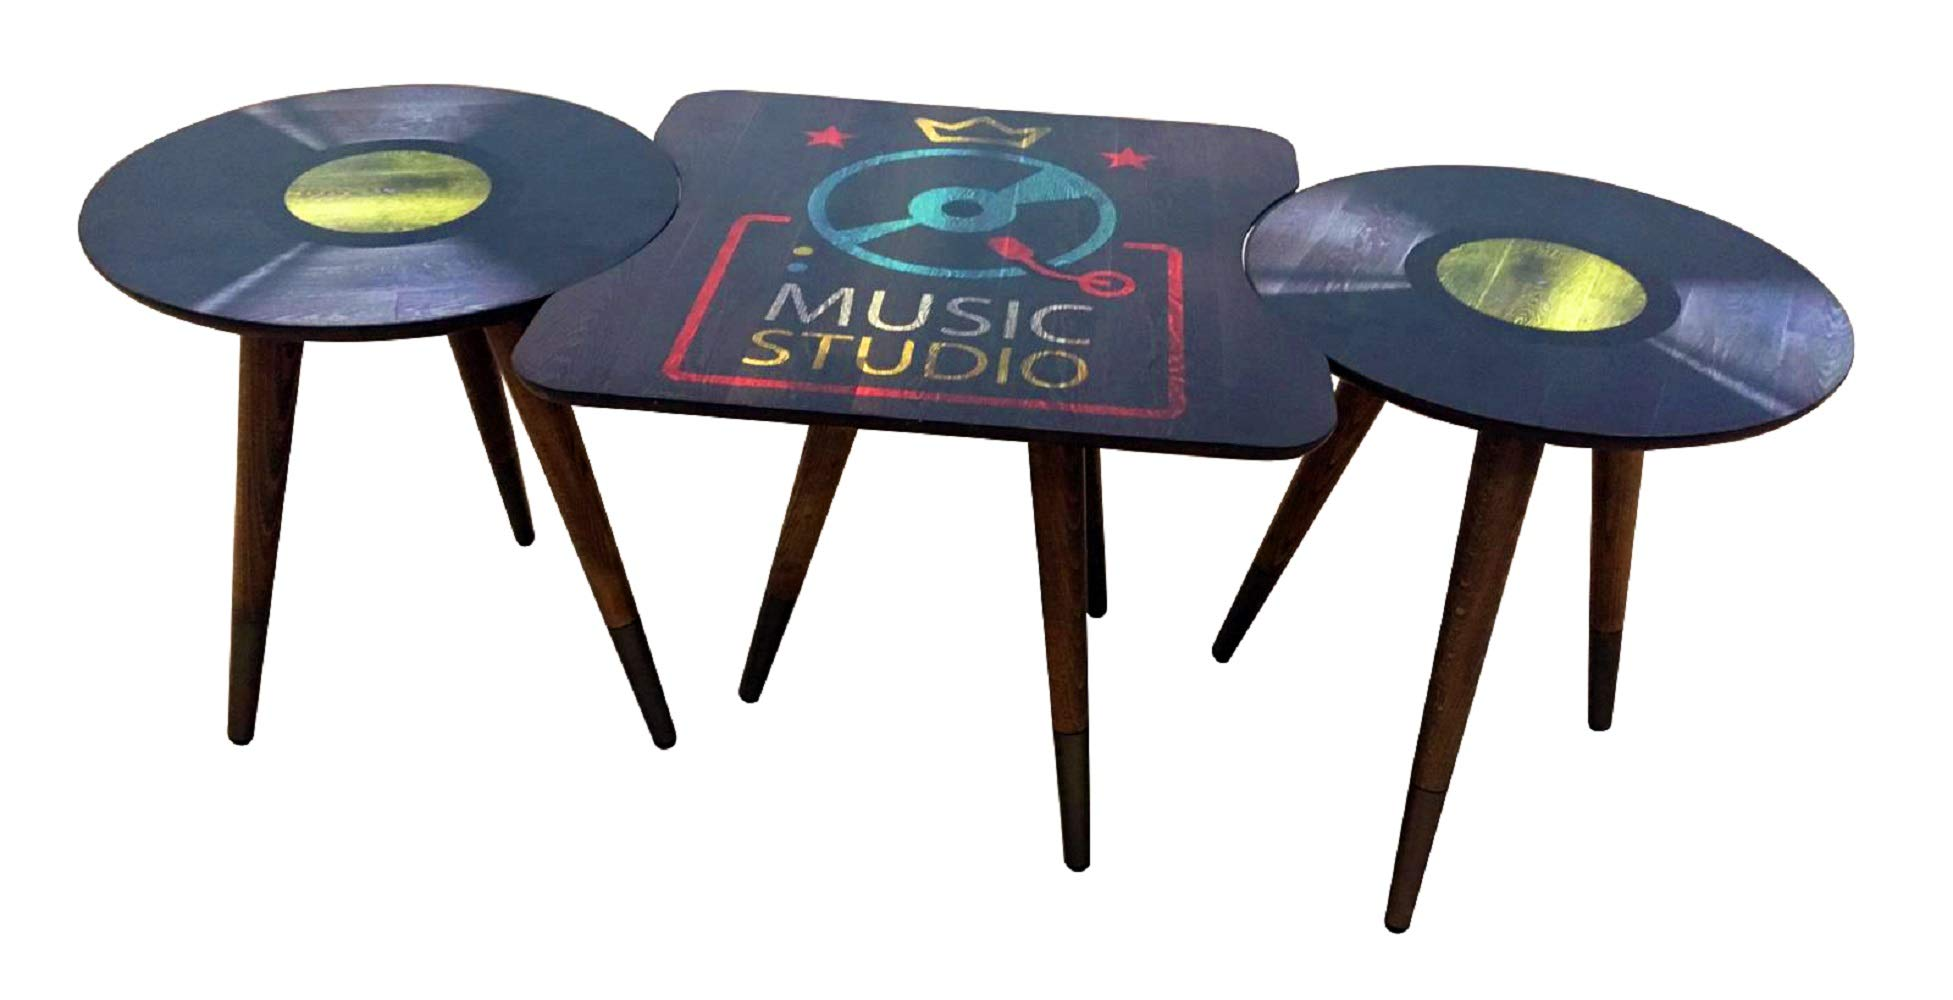 CasaCulina 3 Pieces Print Modern Side End Table Coffee and Cocktail Table,Nesting Table Set with Multiple Color Options (Music) by Casa Culina